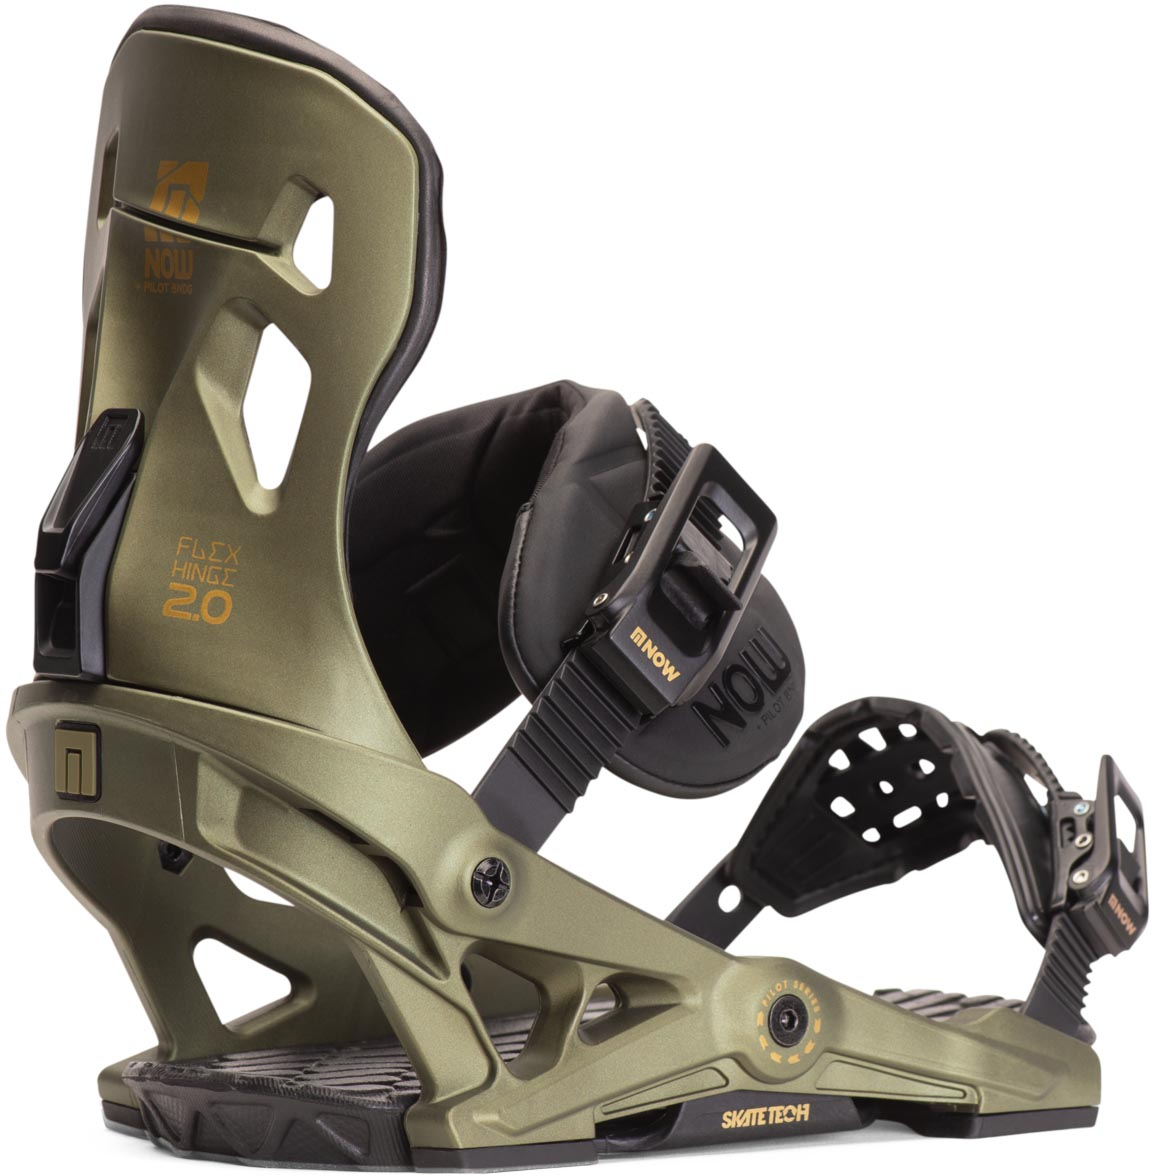 NOW Pilot Snowboard Binding Review